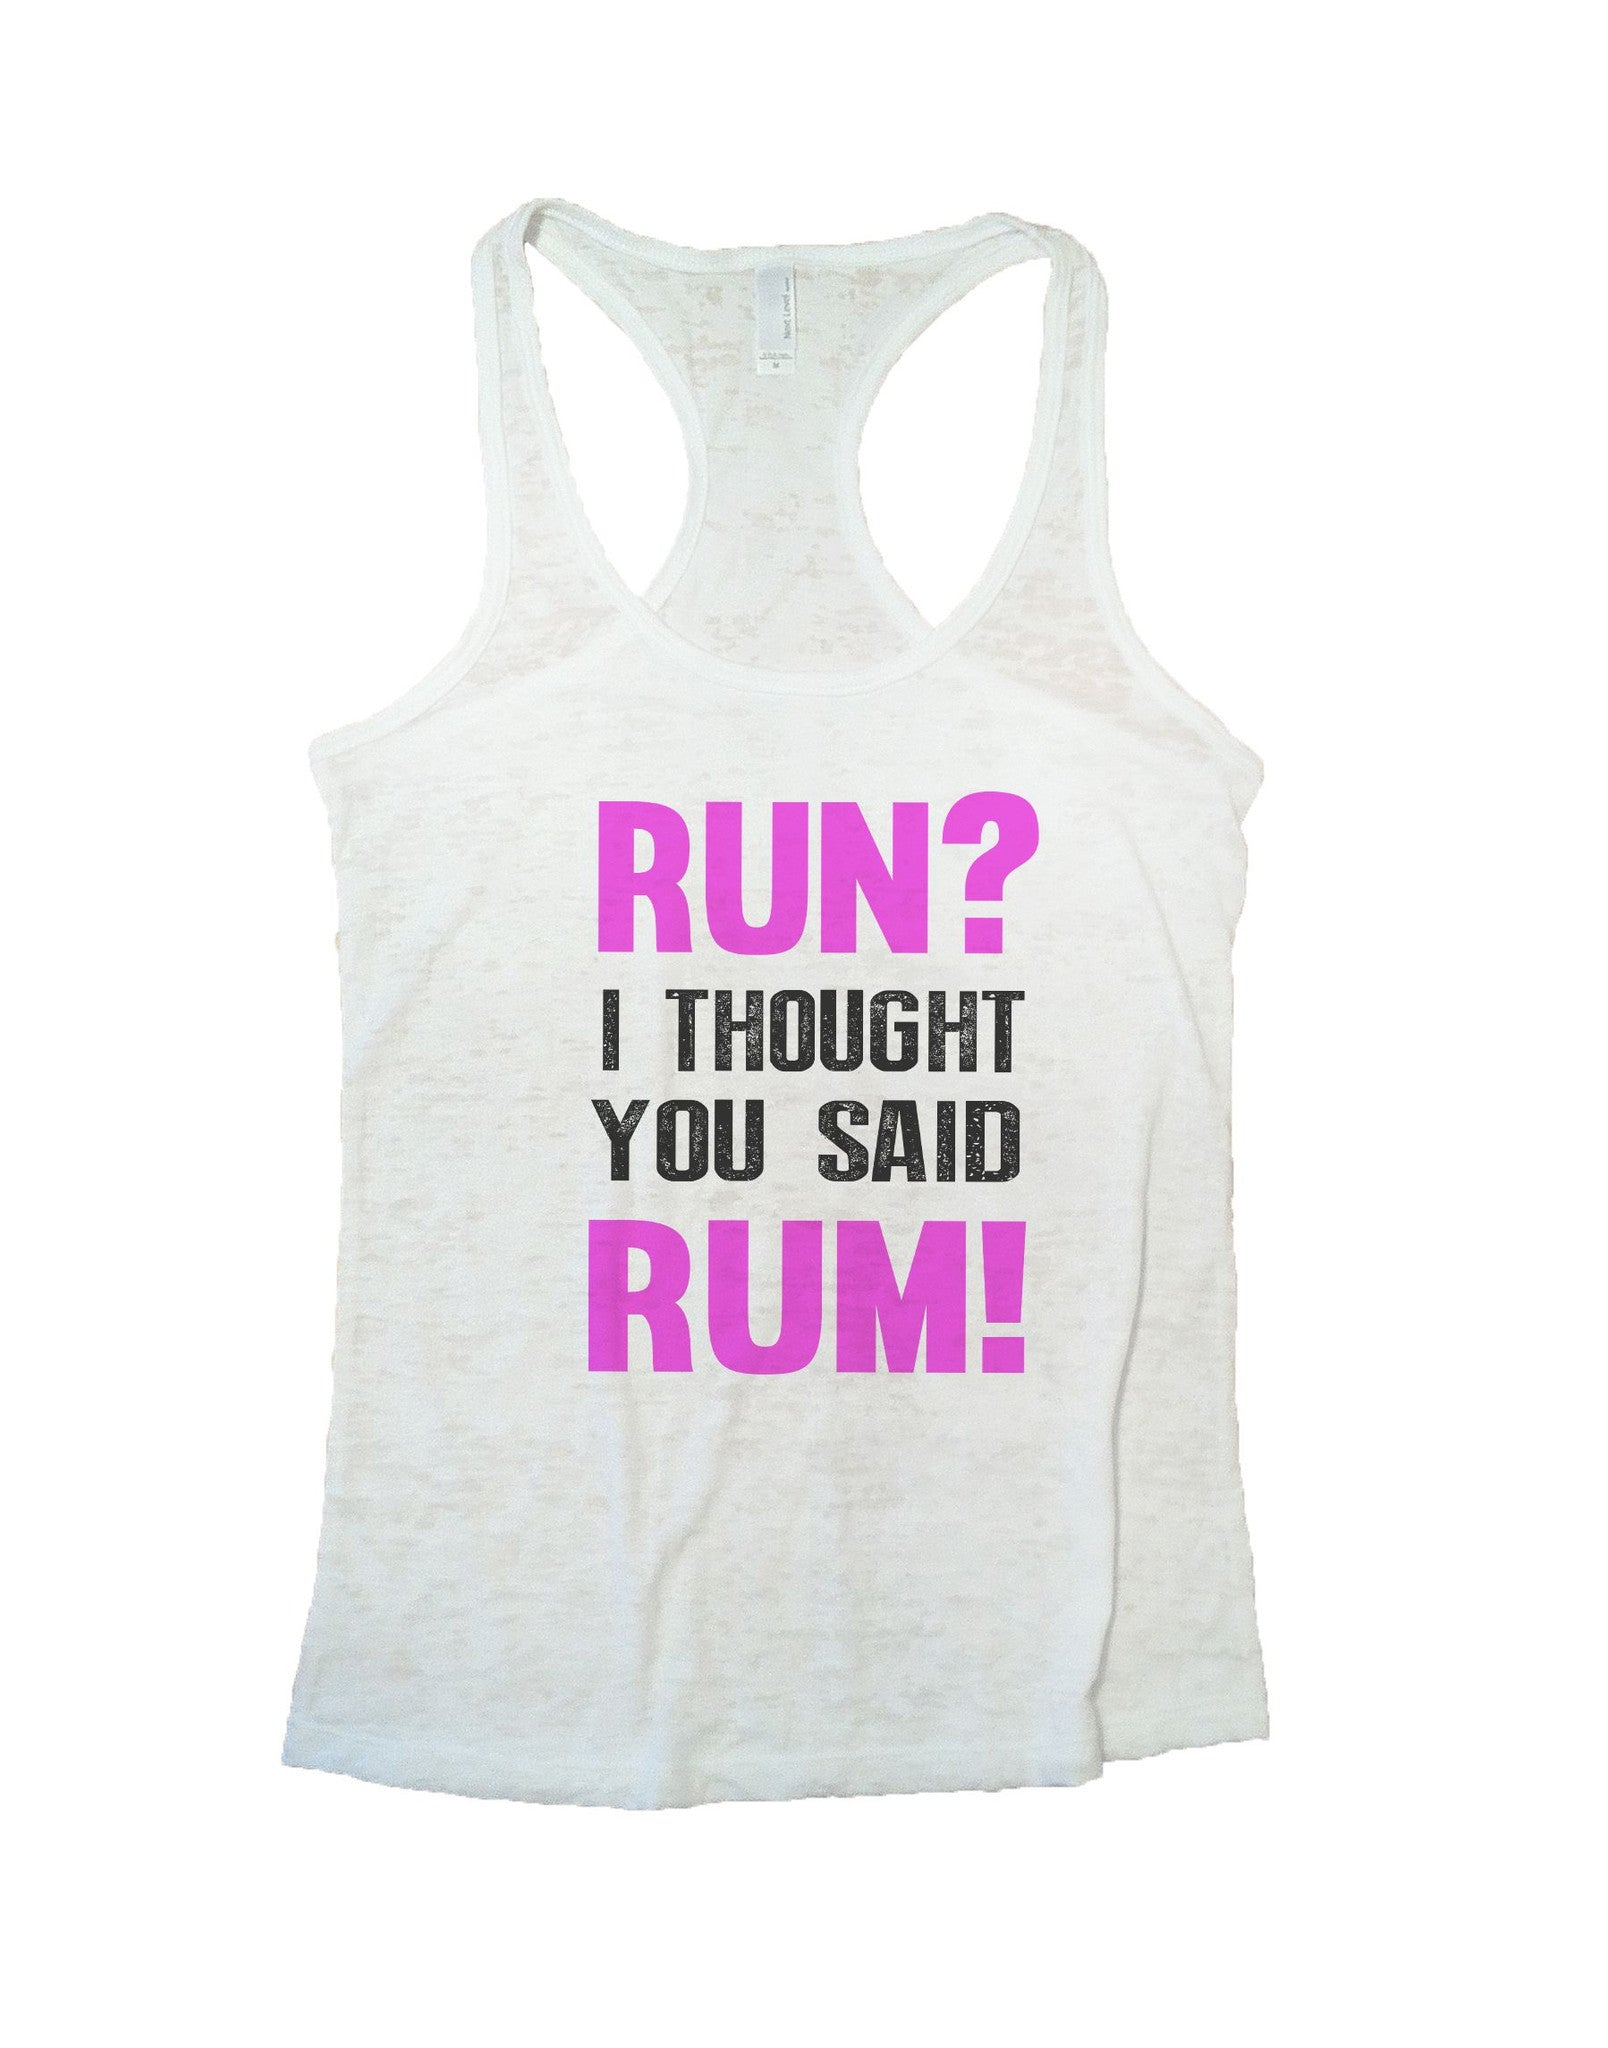 Run? I Thought You Said Rum! Burnout Tank Top By BurnoutTankTops.com - 958 - Funny Shirts Tank Tops Burnouts and Triblends  - 6